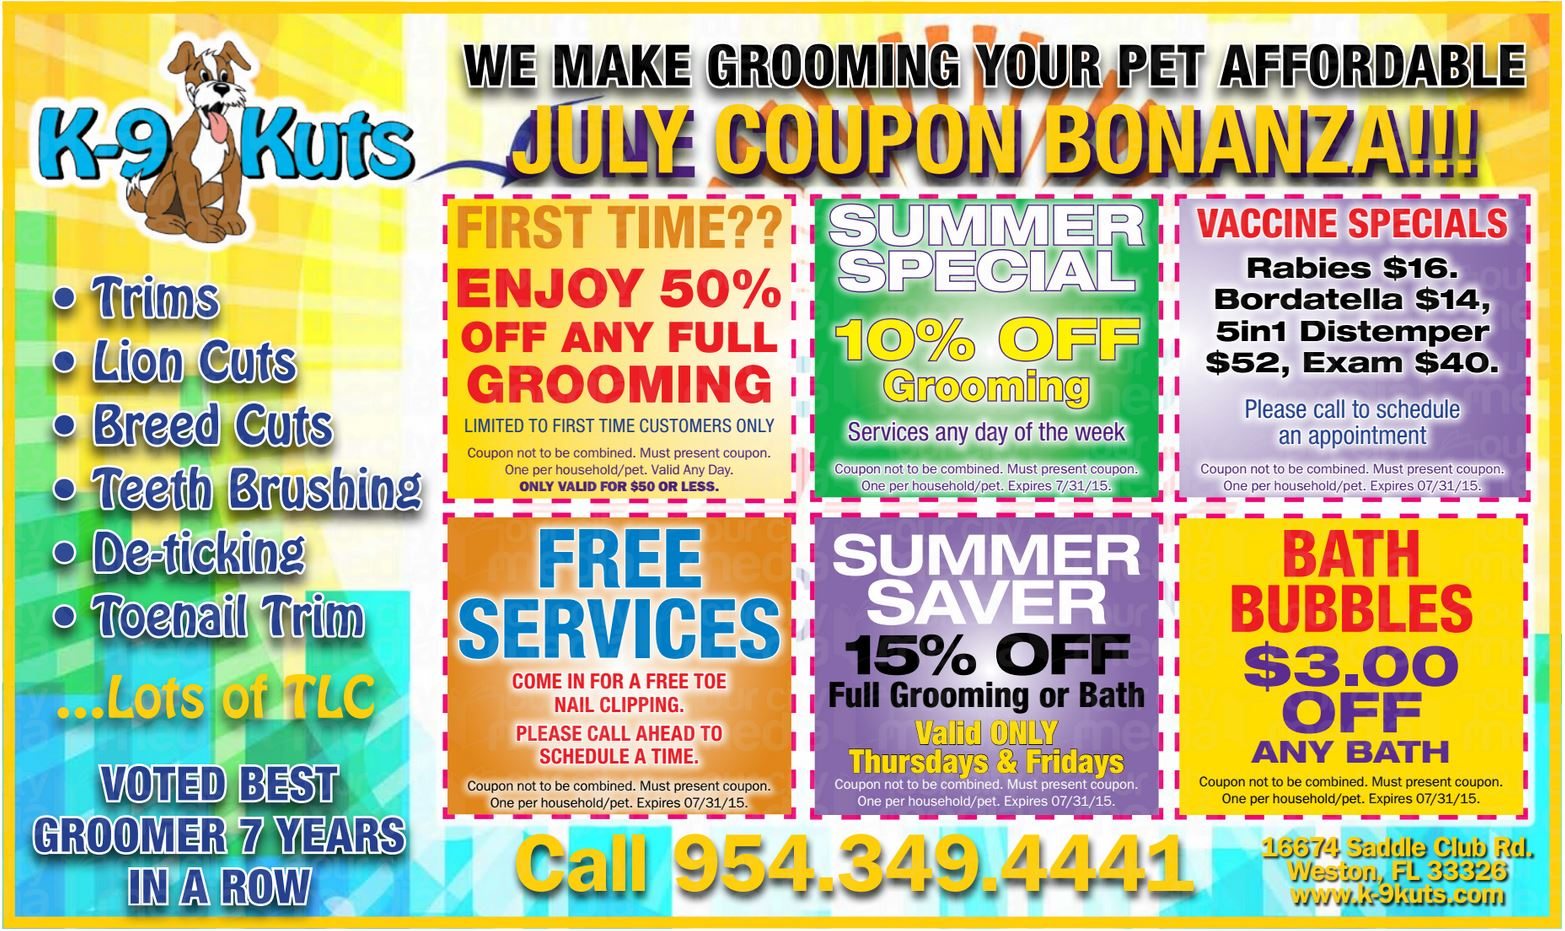 Weston Affordable Dog Groomer Reviews